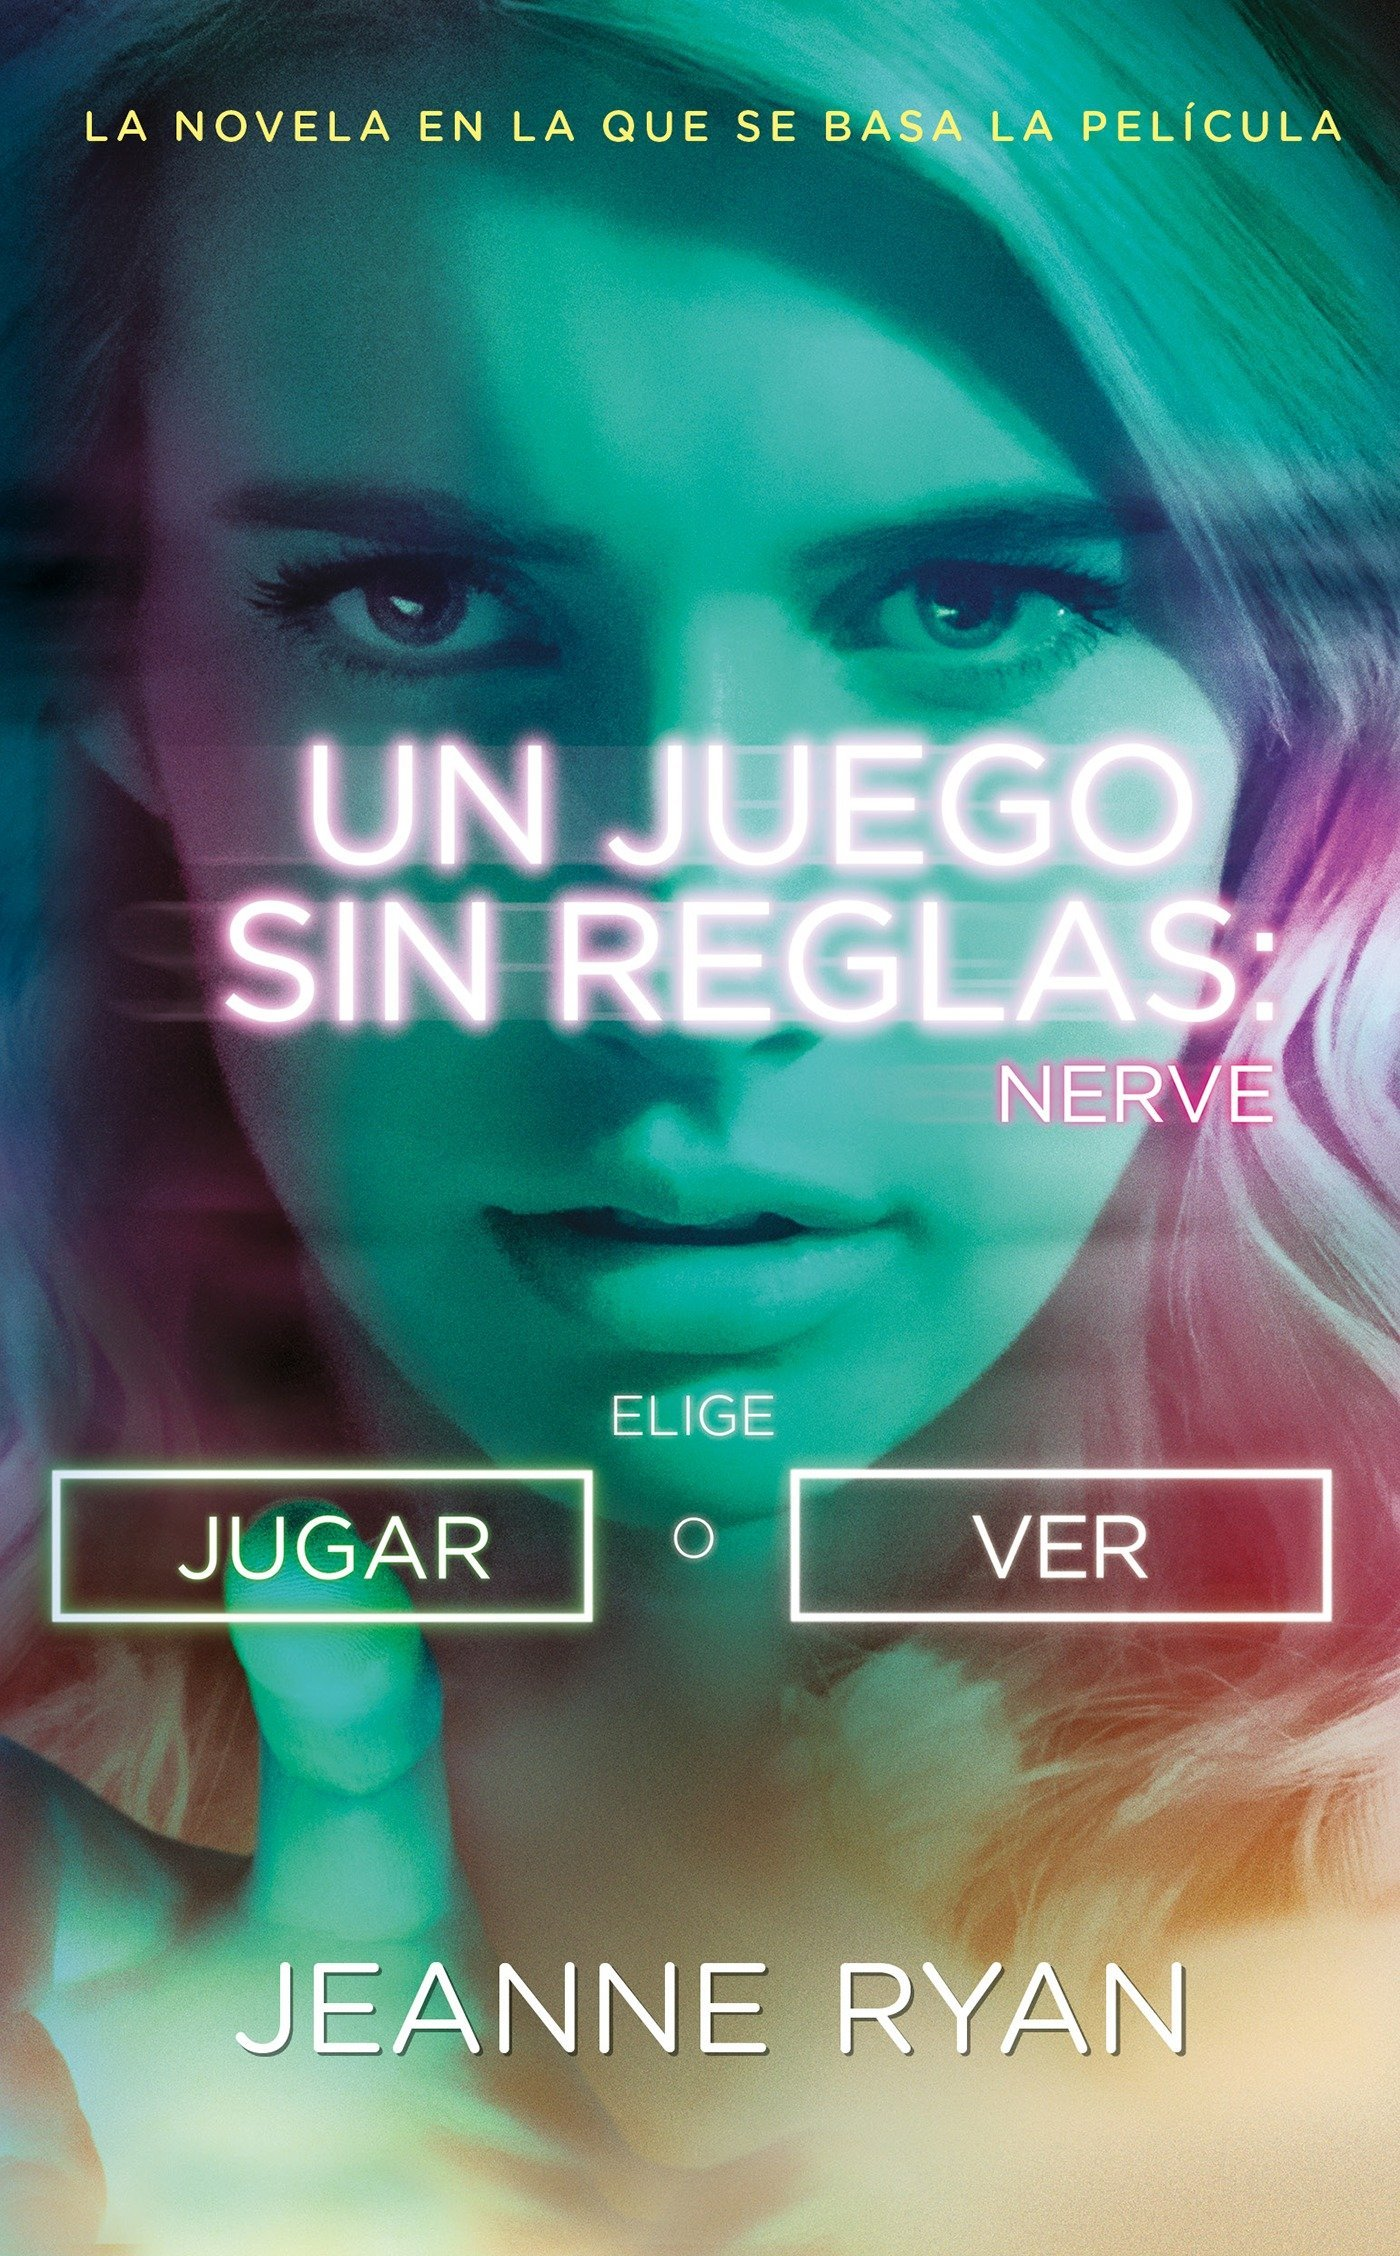 Amazon.com: Nerve. Un juego sin reglas (Spanish Edition) (9786073149068): Jeanne Ryan: Books